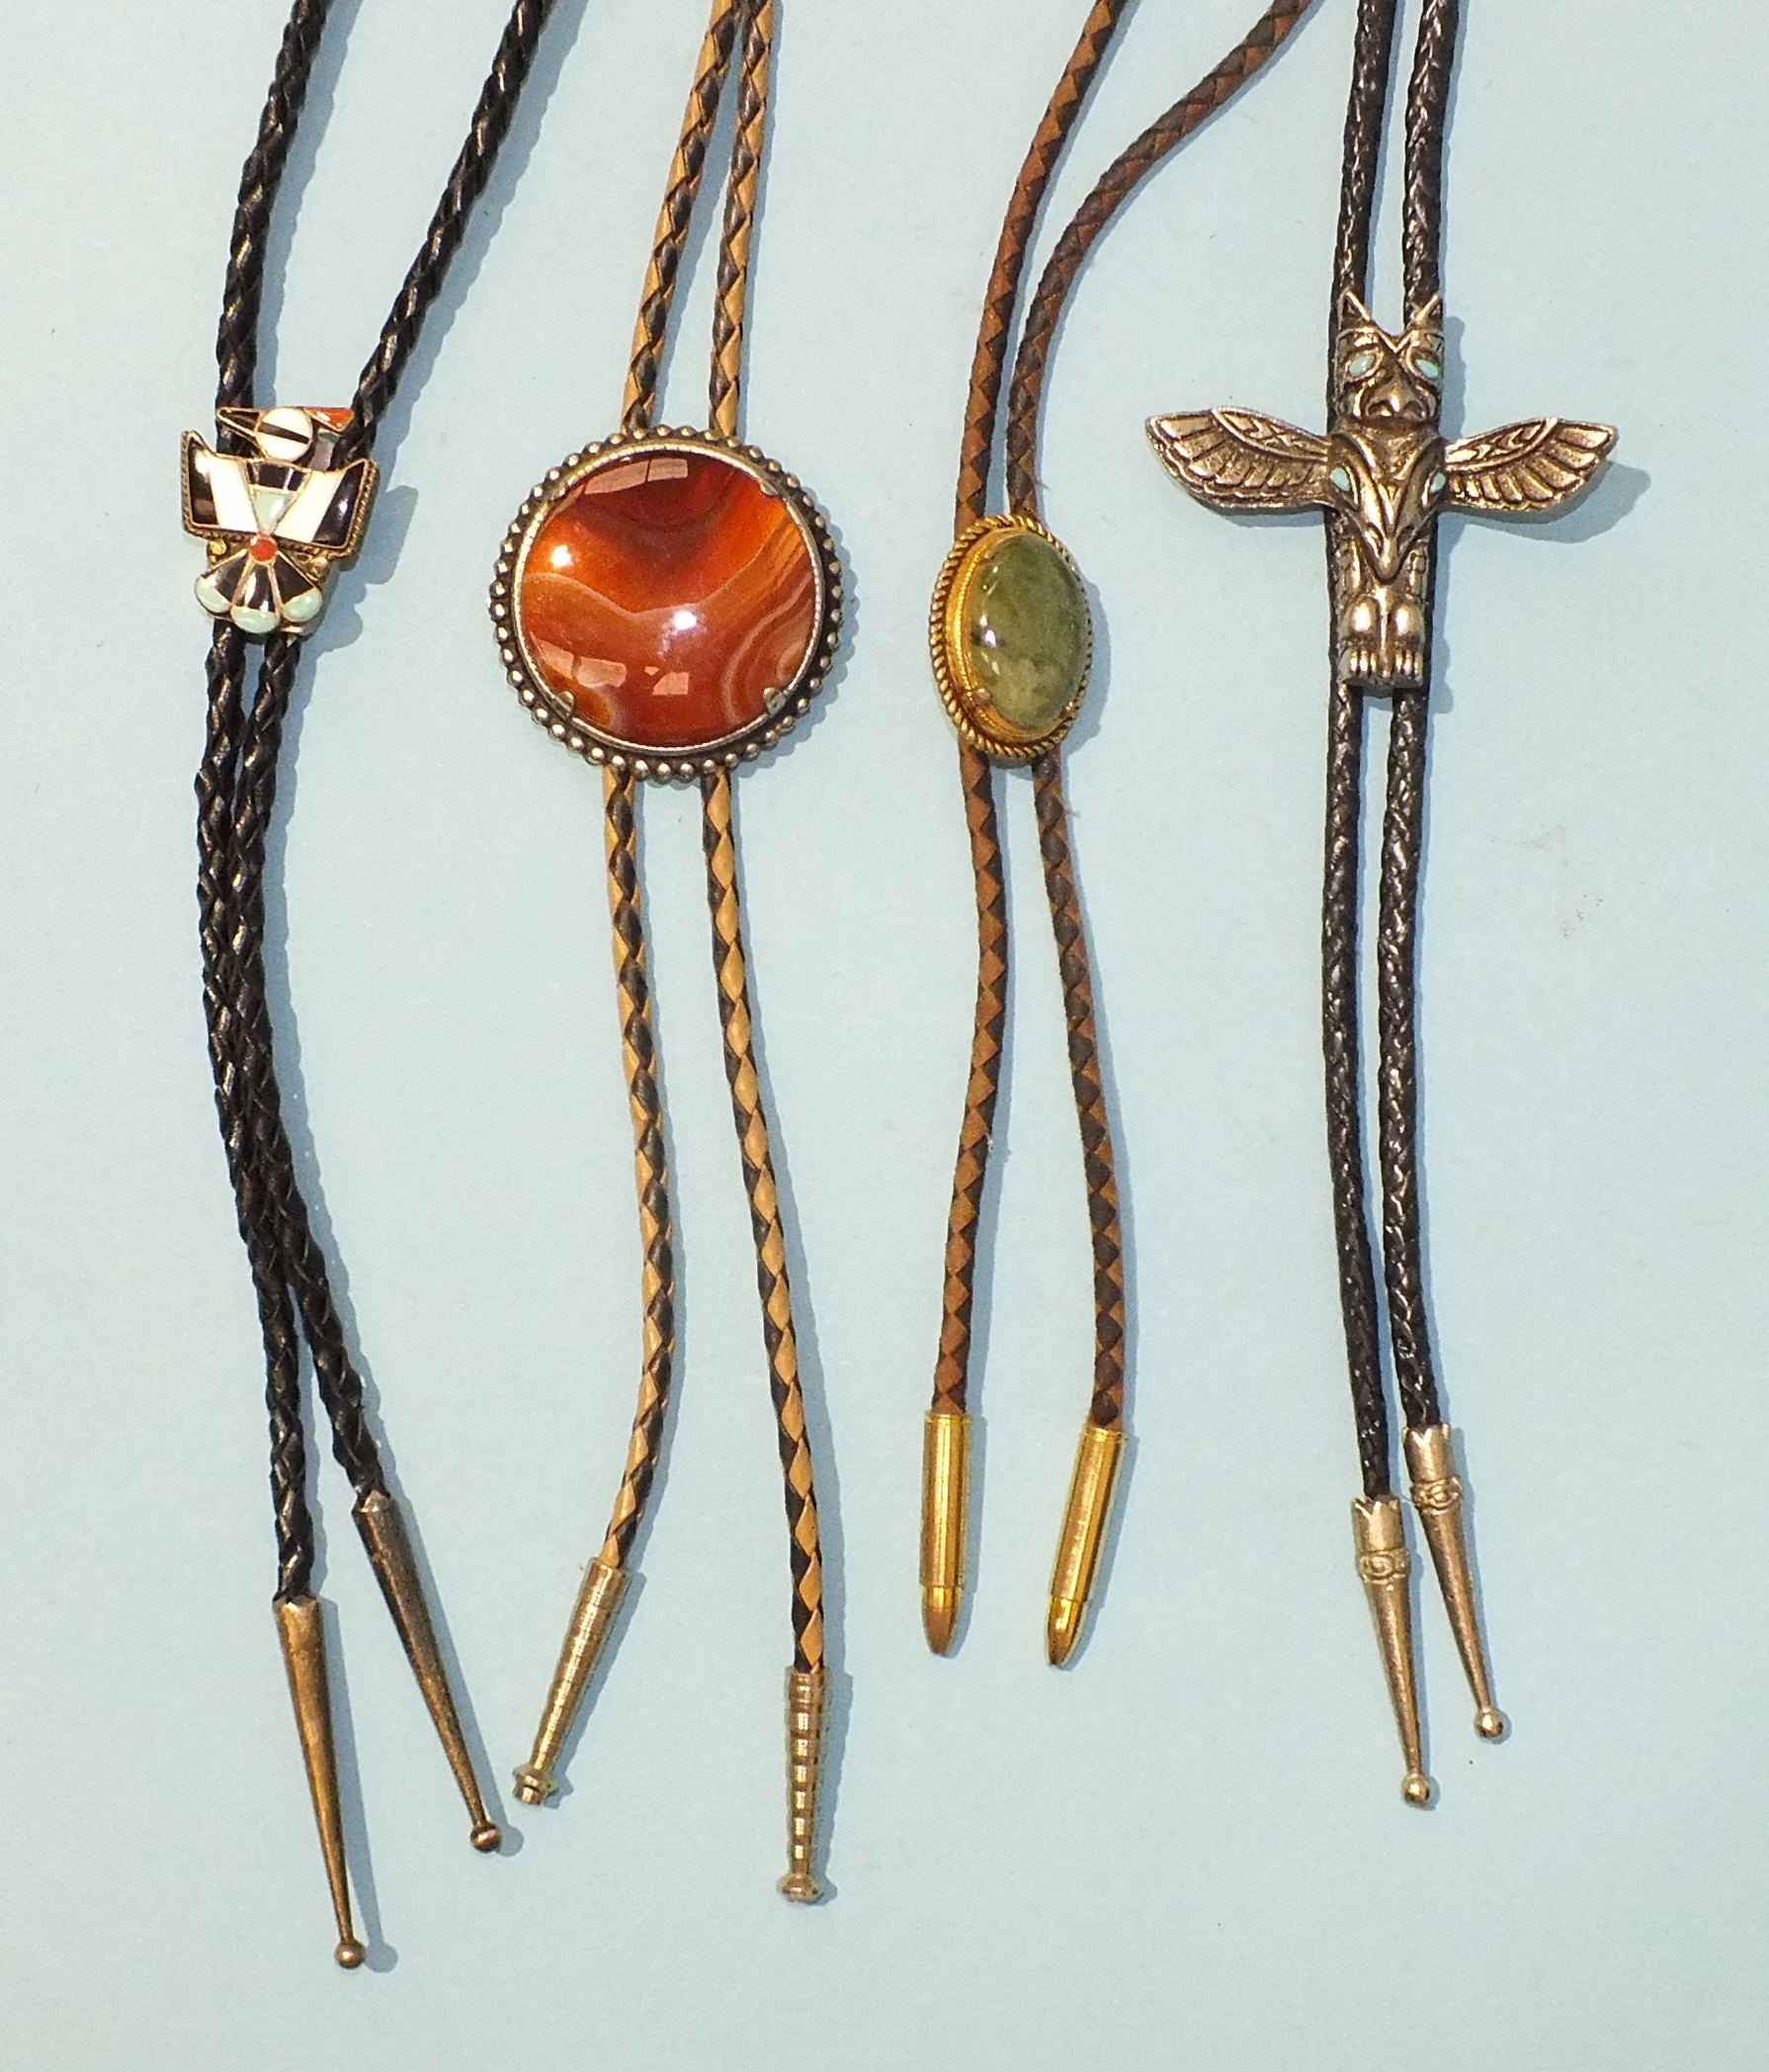 Lot 542 - A white metal and leather bolo inlaid with turquoise and stones set Thunderbird, probably H & E